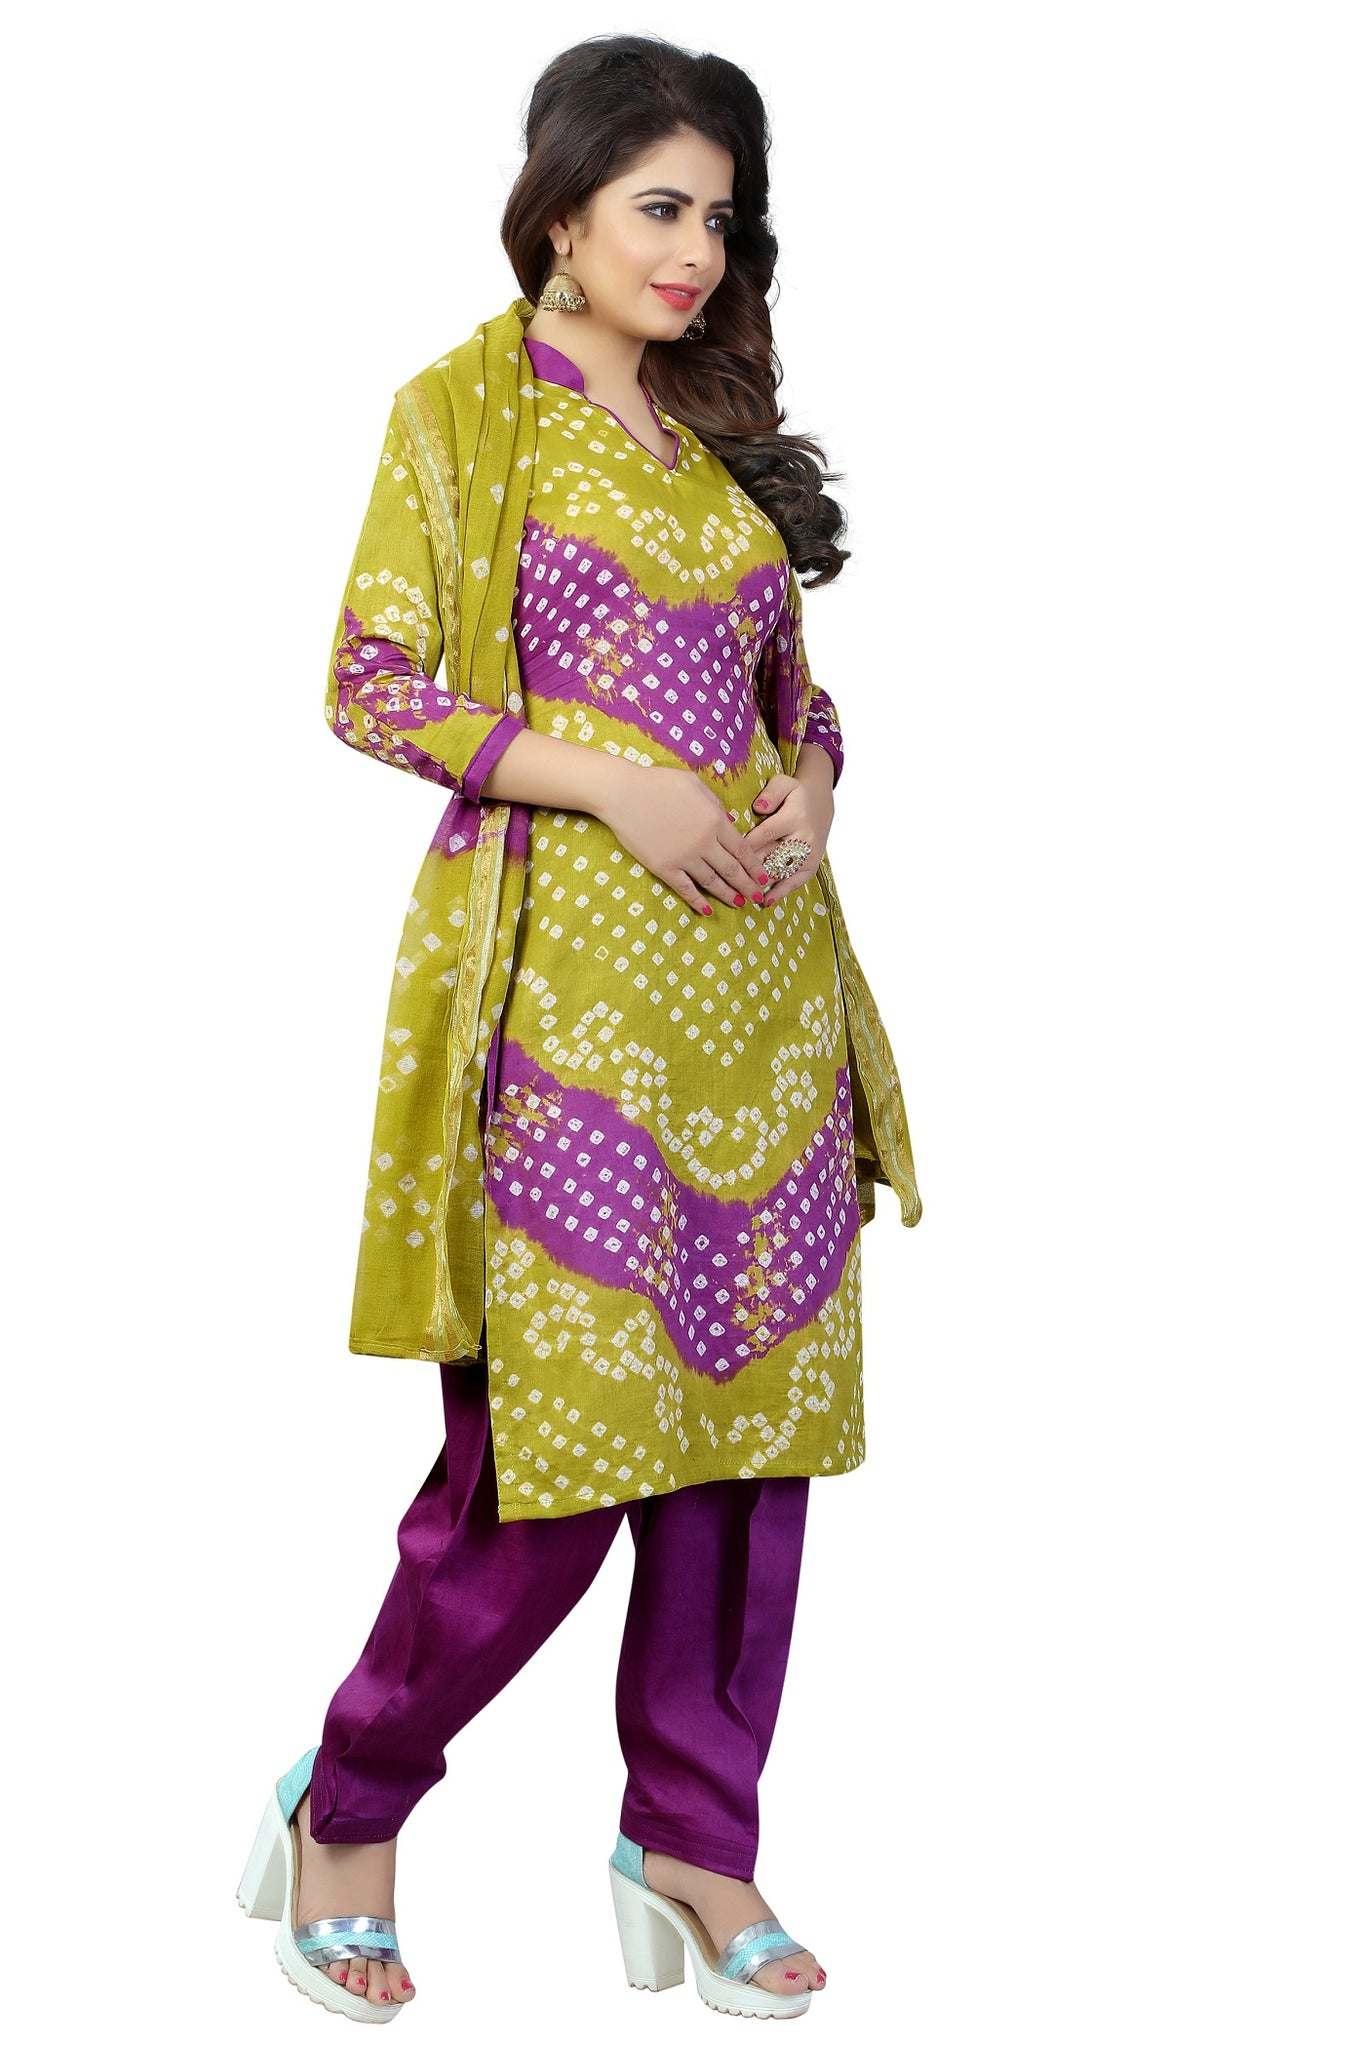 73c1789feb ... Comely Mahendi & Purple Satin Cotton Handi Crafts Bandhani Work  With Straight Salwar Suit ...